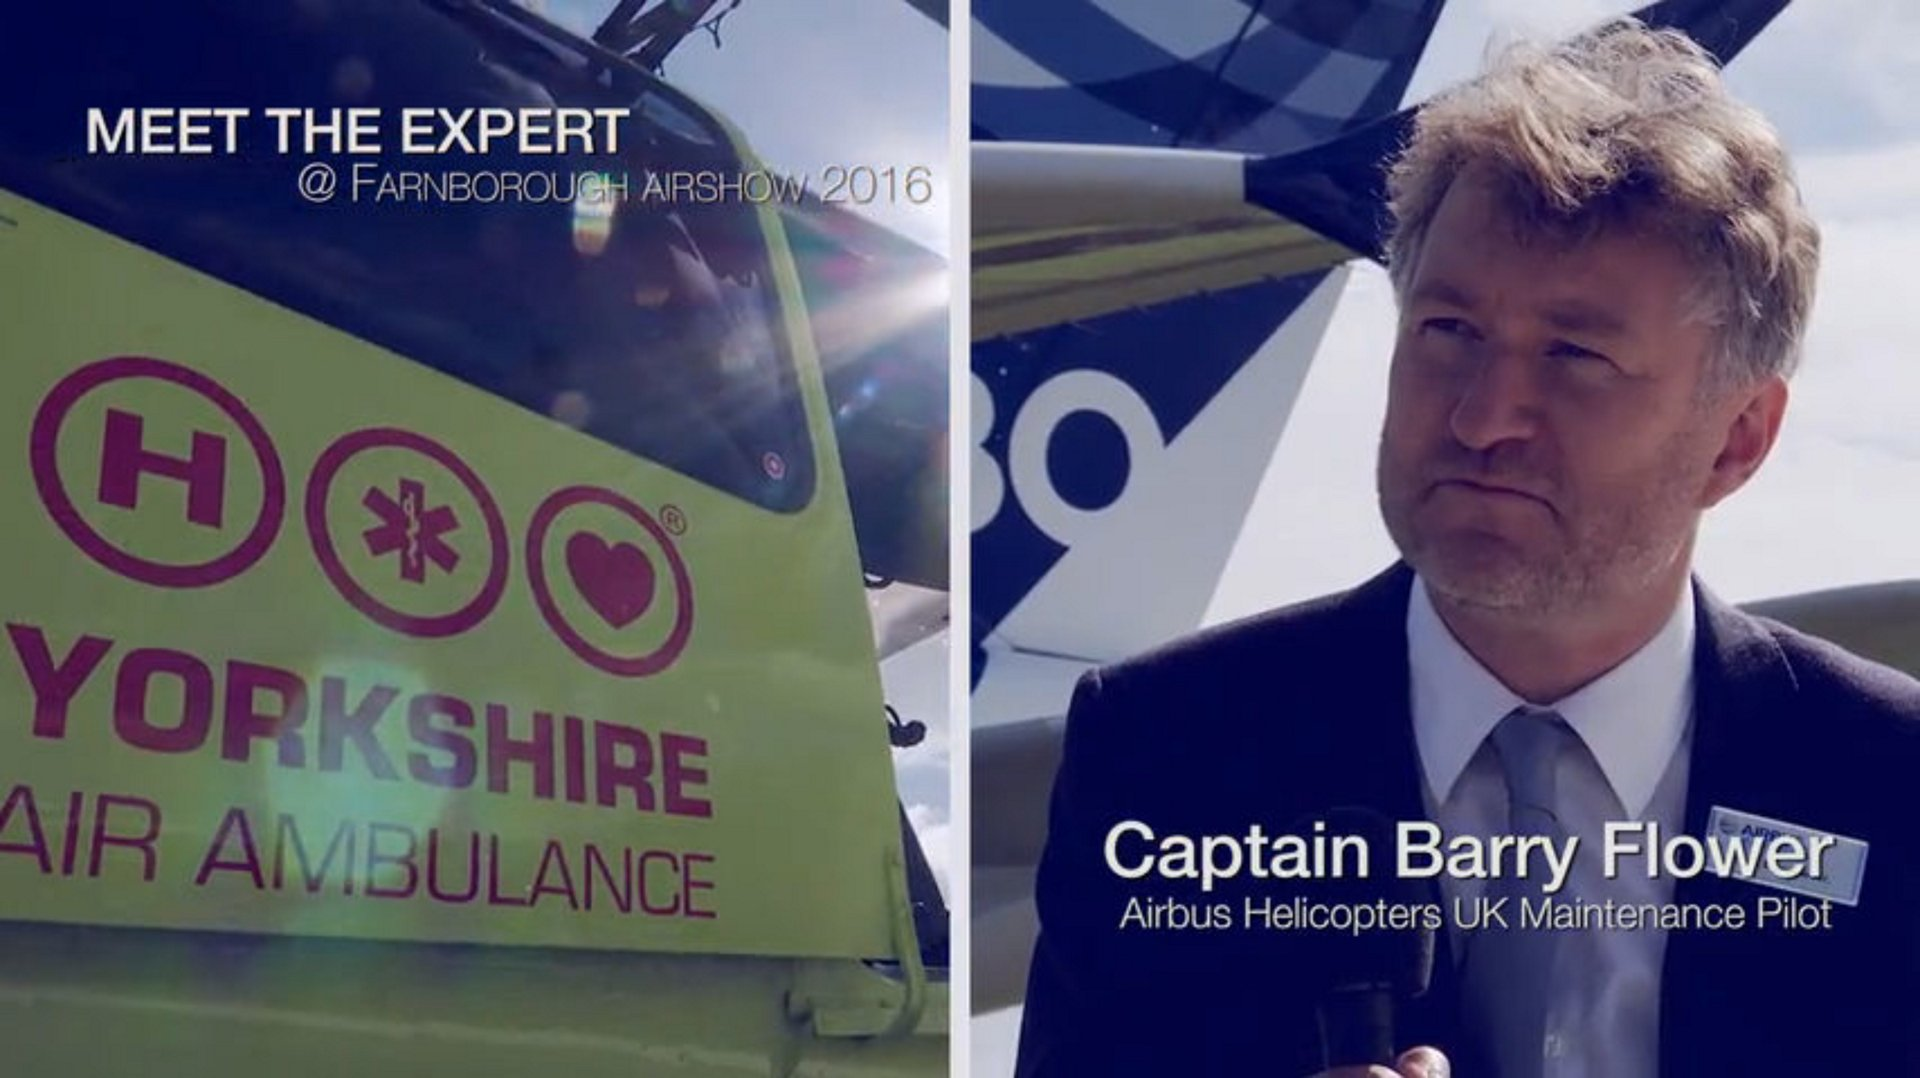 Meet the Expert: Captain Barry Flower, maintenance pilot, at Farnborough